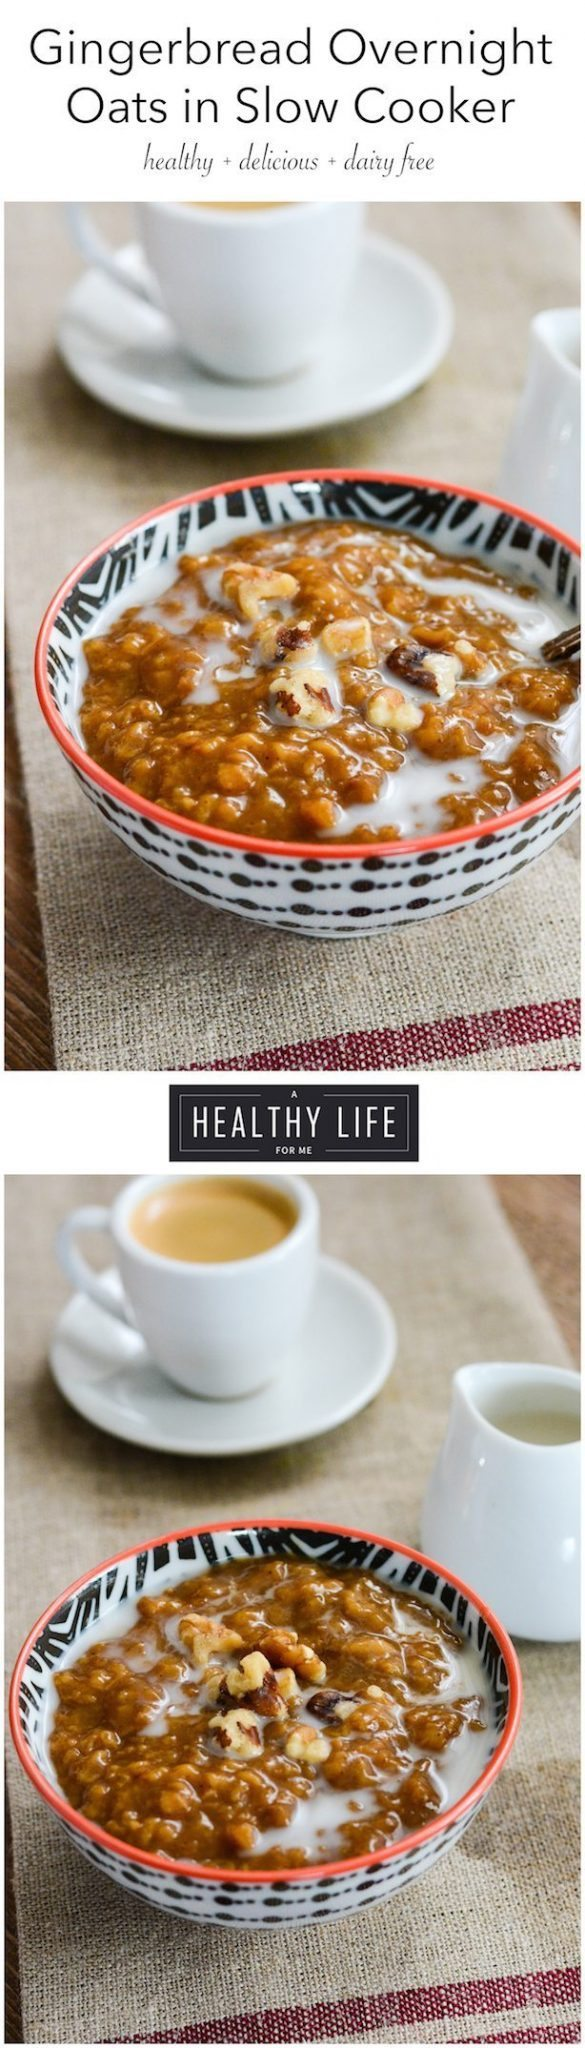 Gingerbread Overnight Oats cooked in Slow Cooker Recipe | ahealthylifeforme.com